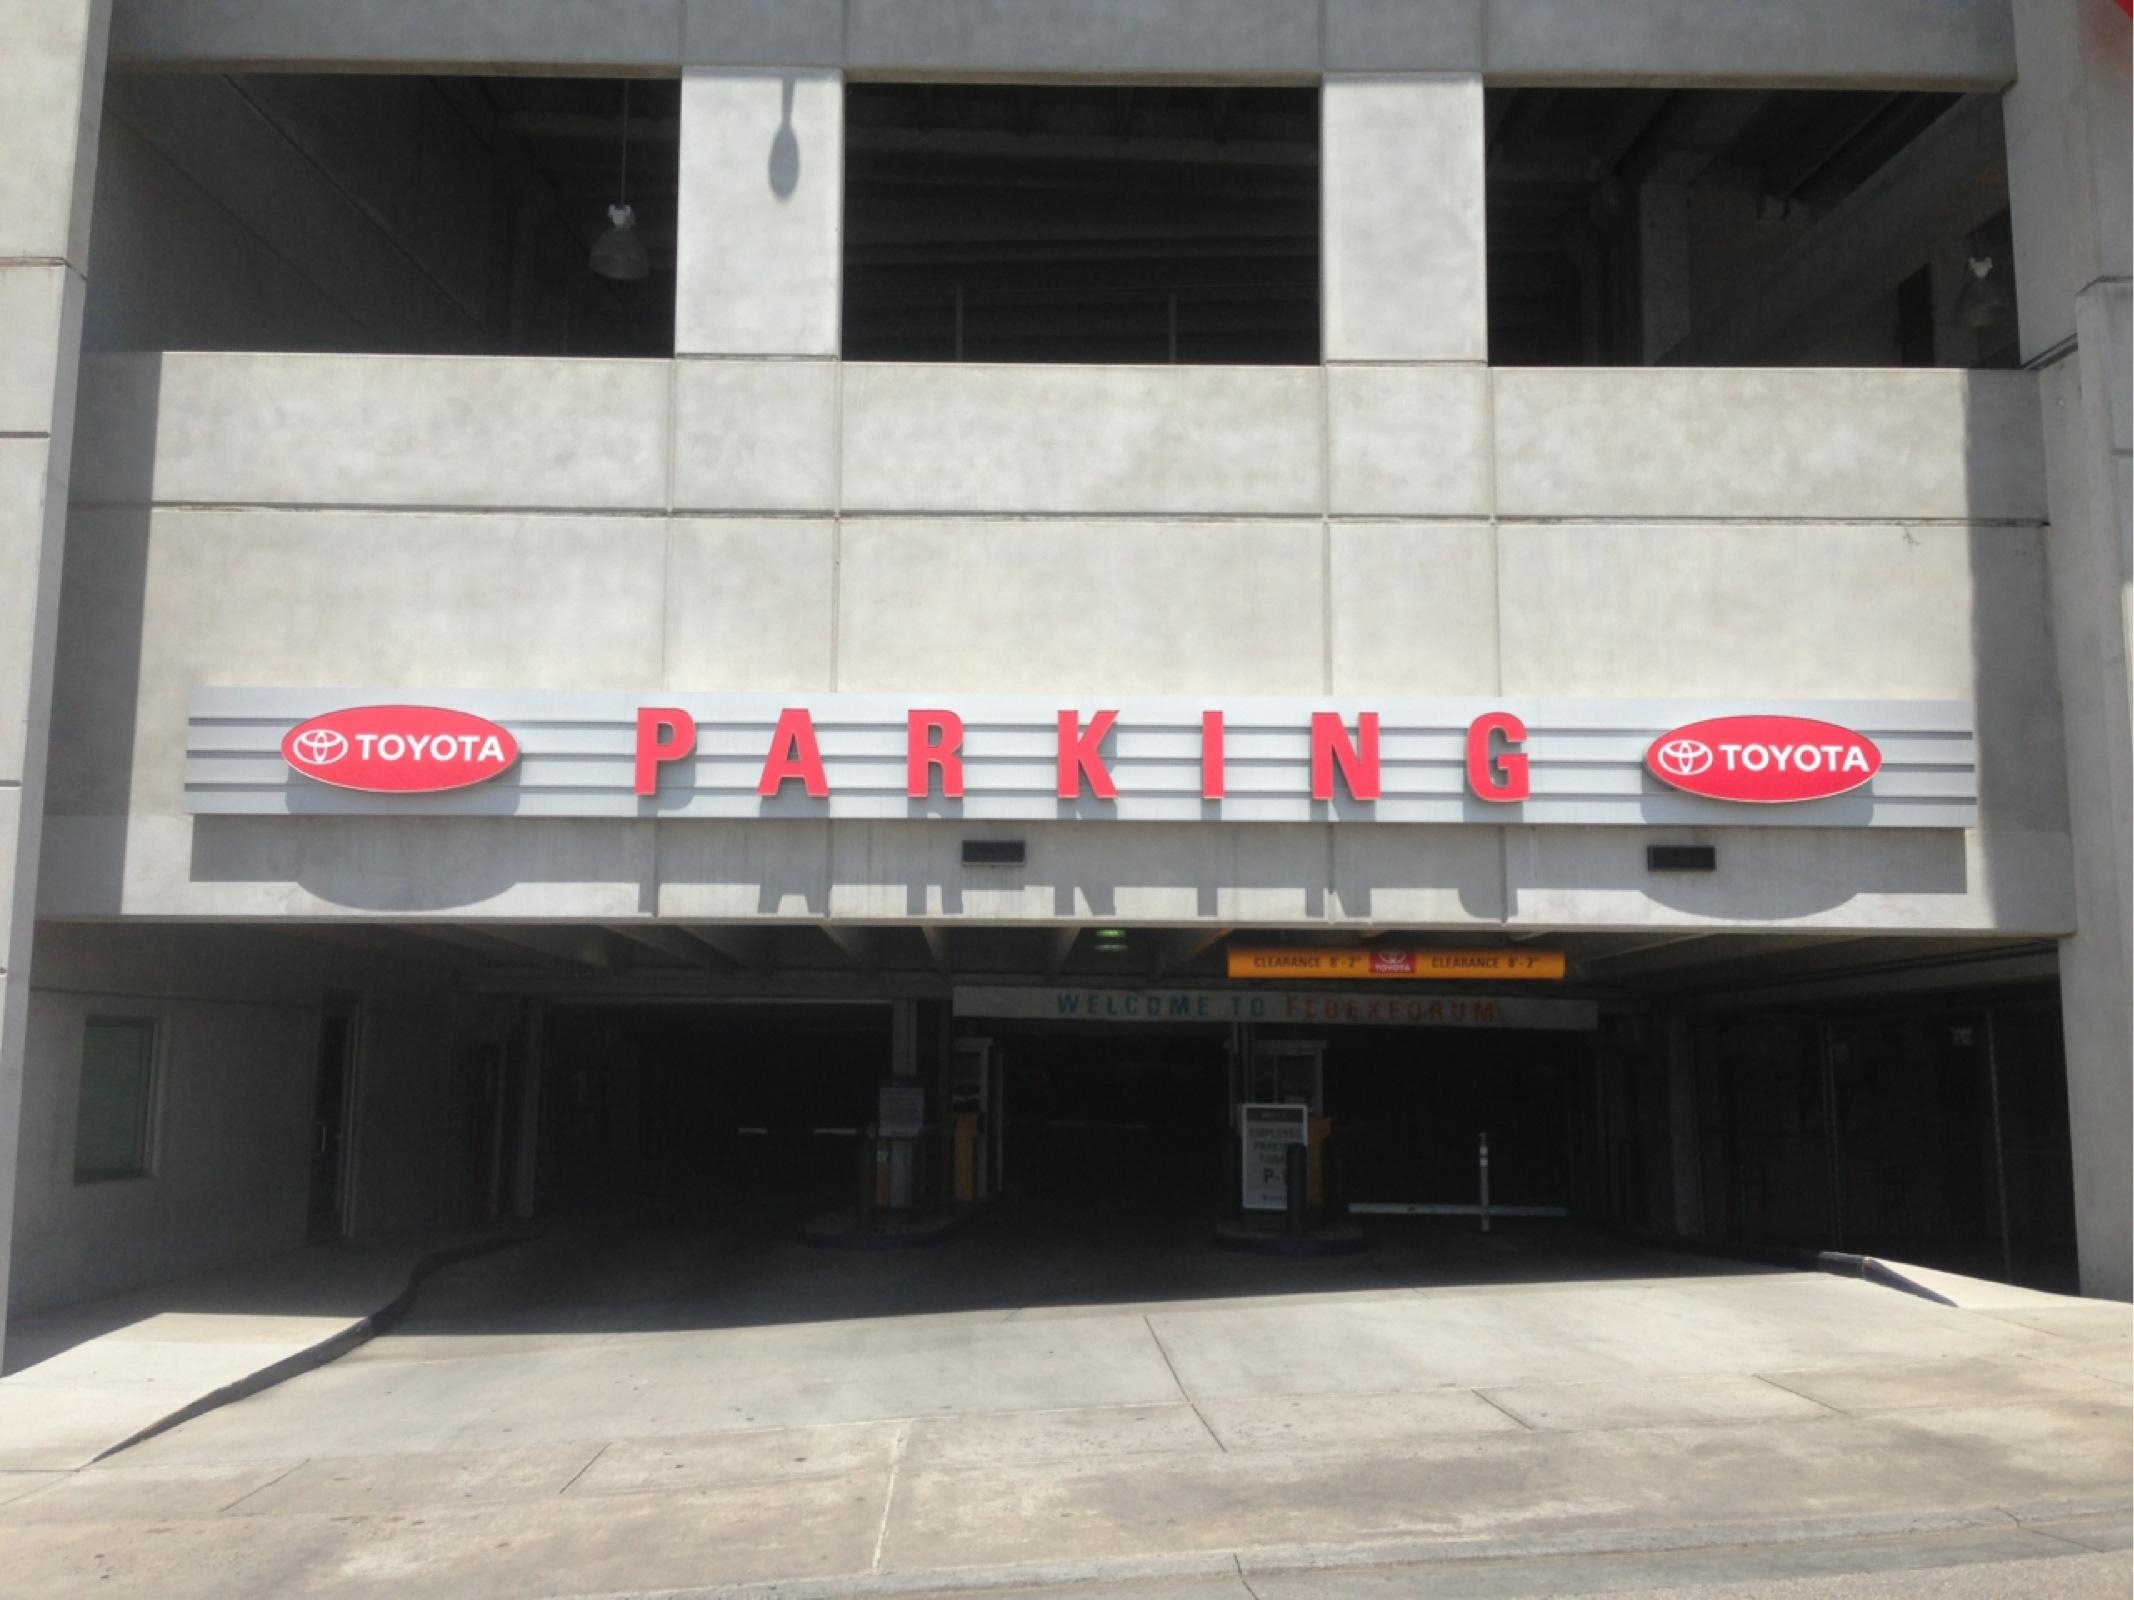 Toyota Parking Garage - Parking in Memphis | ParkMe